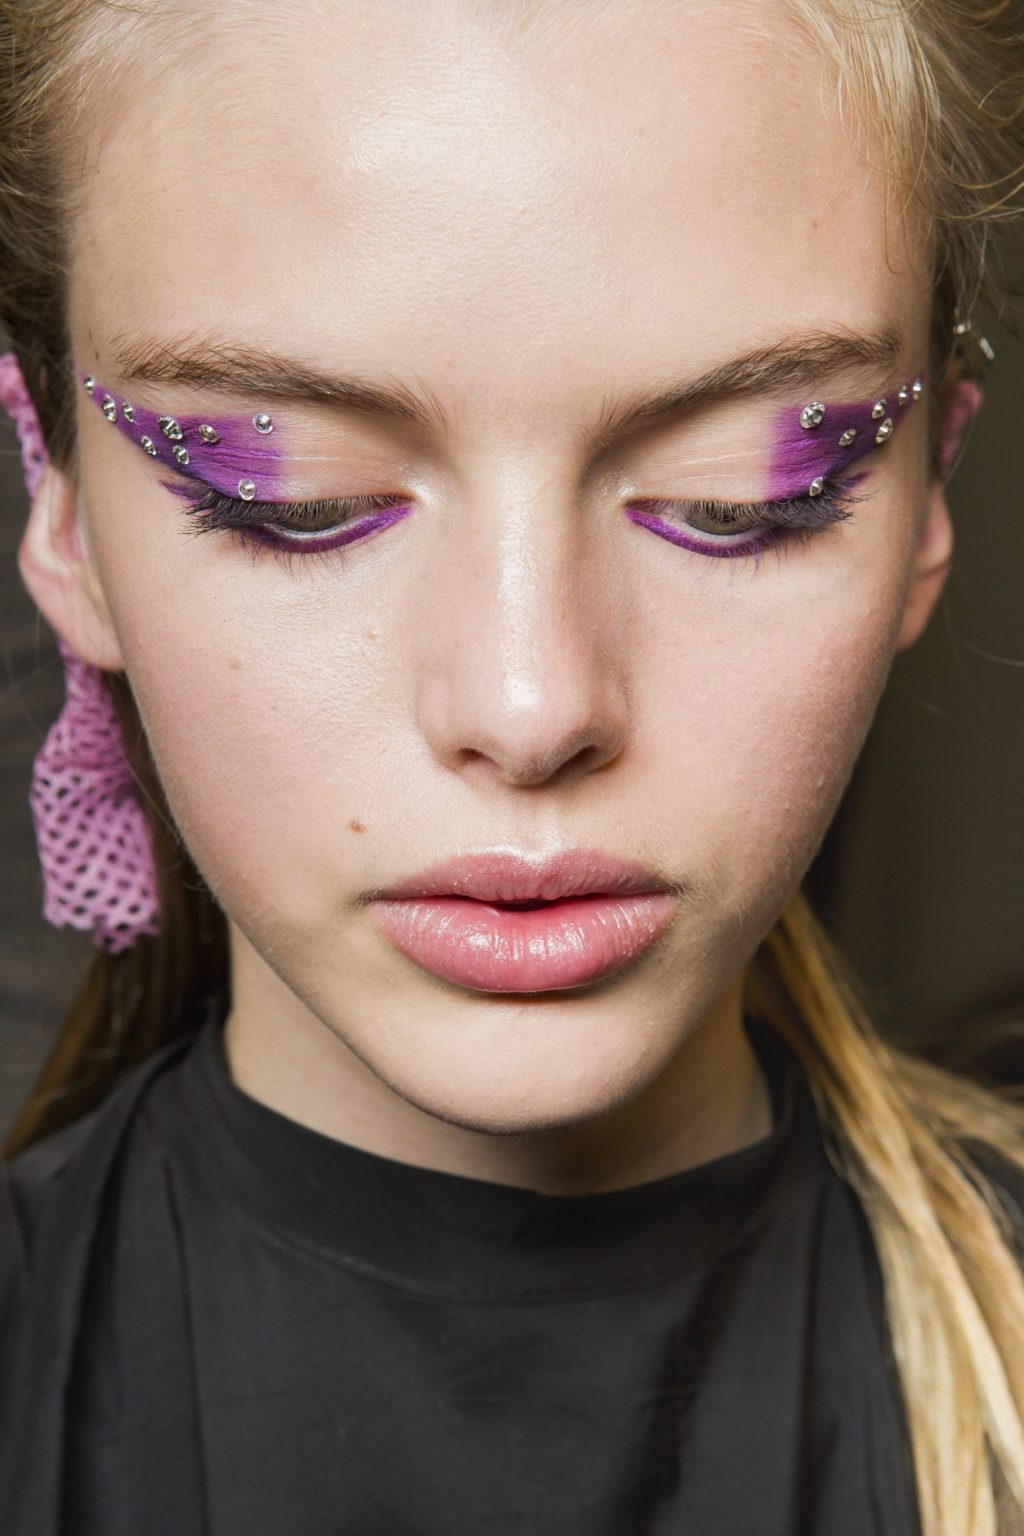 Gravity-Defying Hair, a Third Eye, and More Shocking Beauty Moments at MFW